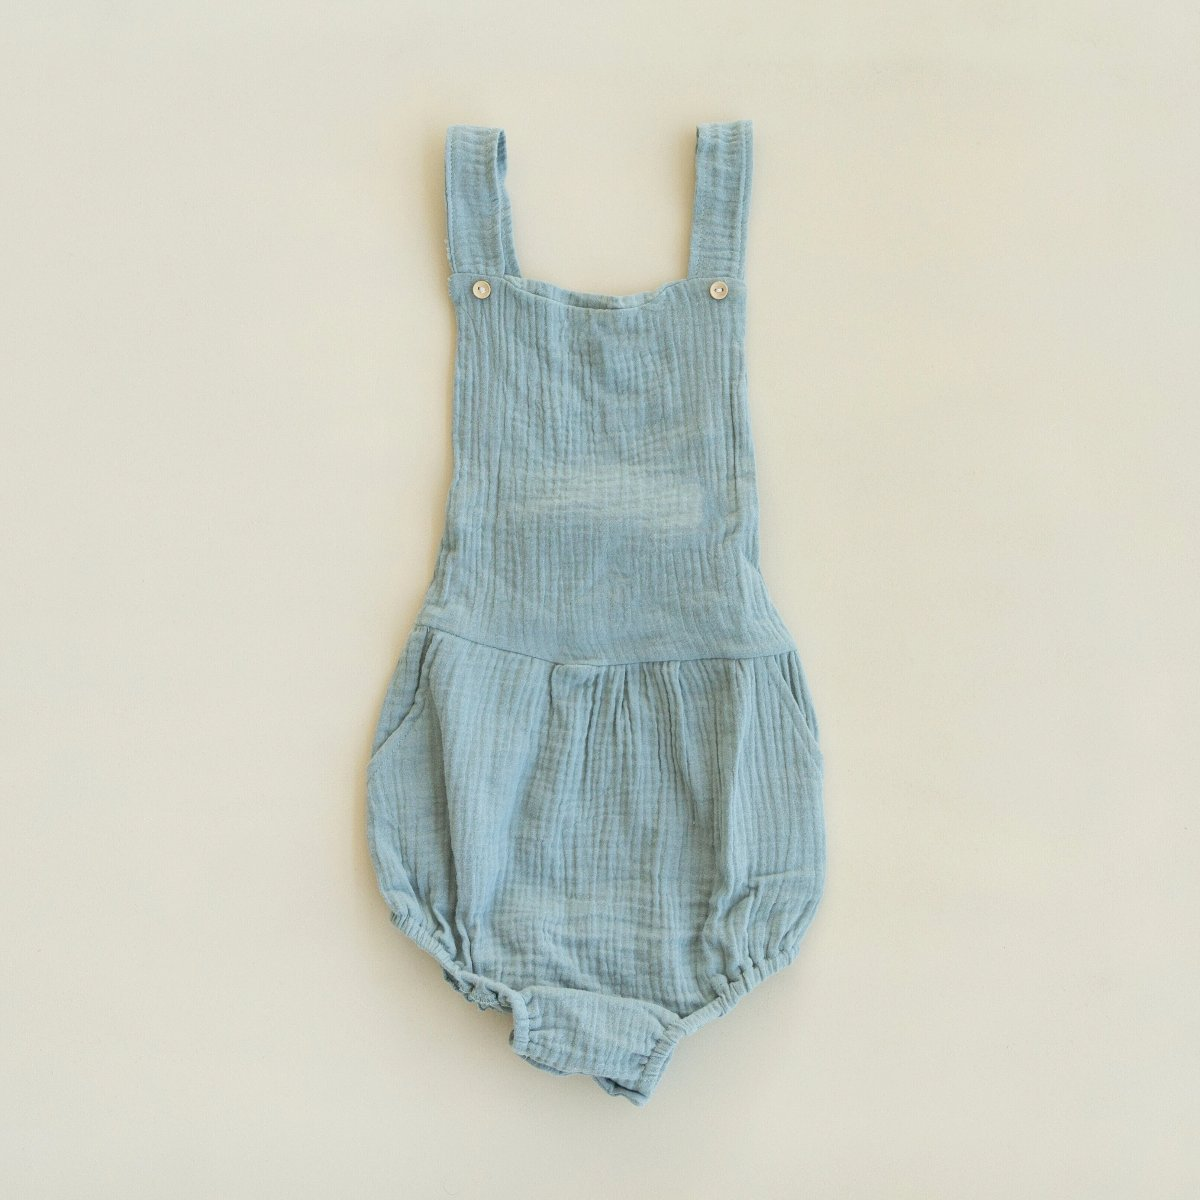 US stockist of Fable & Ford's Seafoam Green Cheescloth Leo Pocket Romper